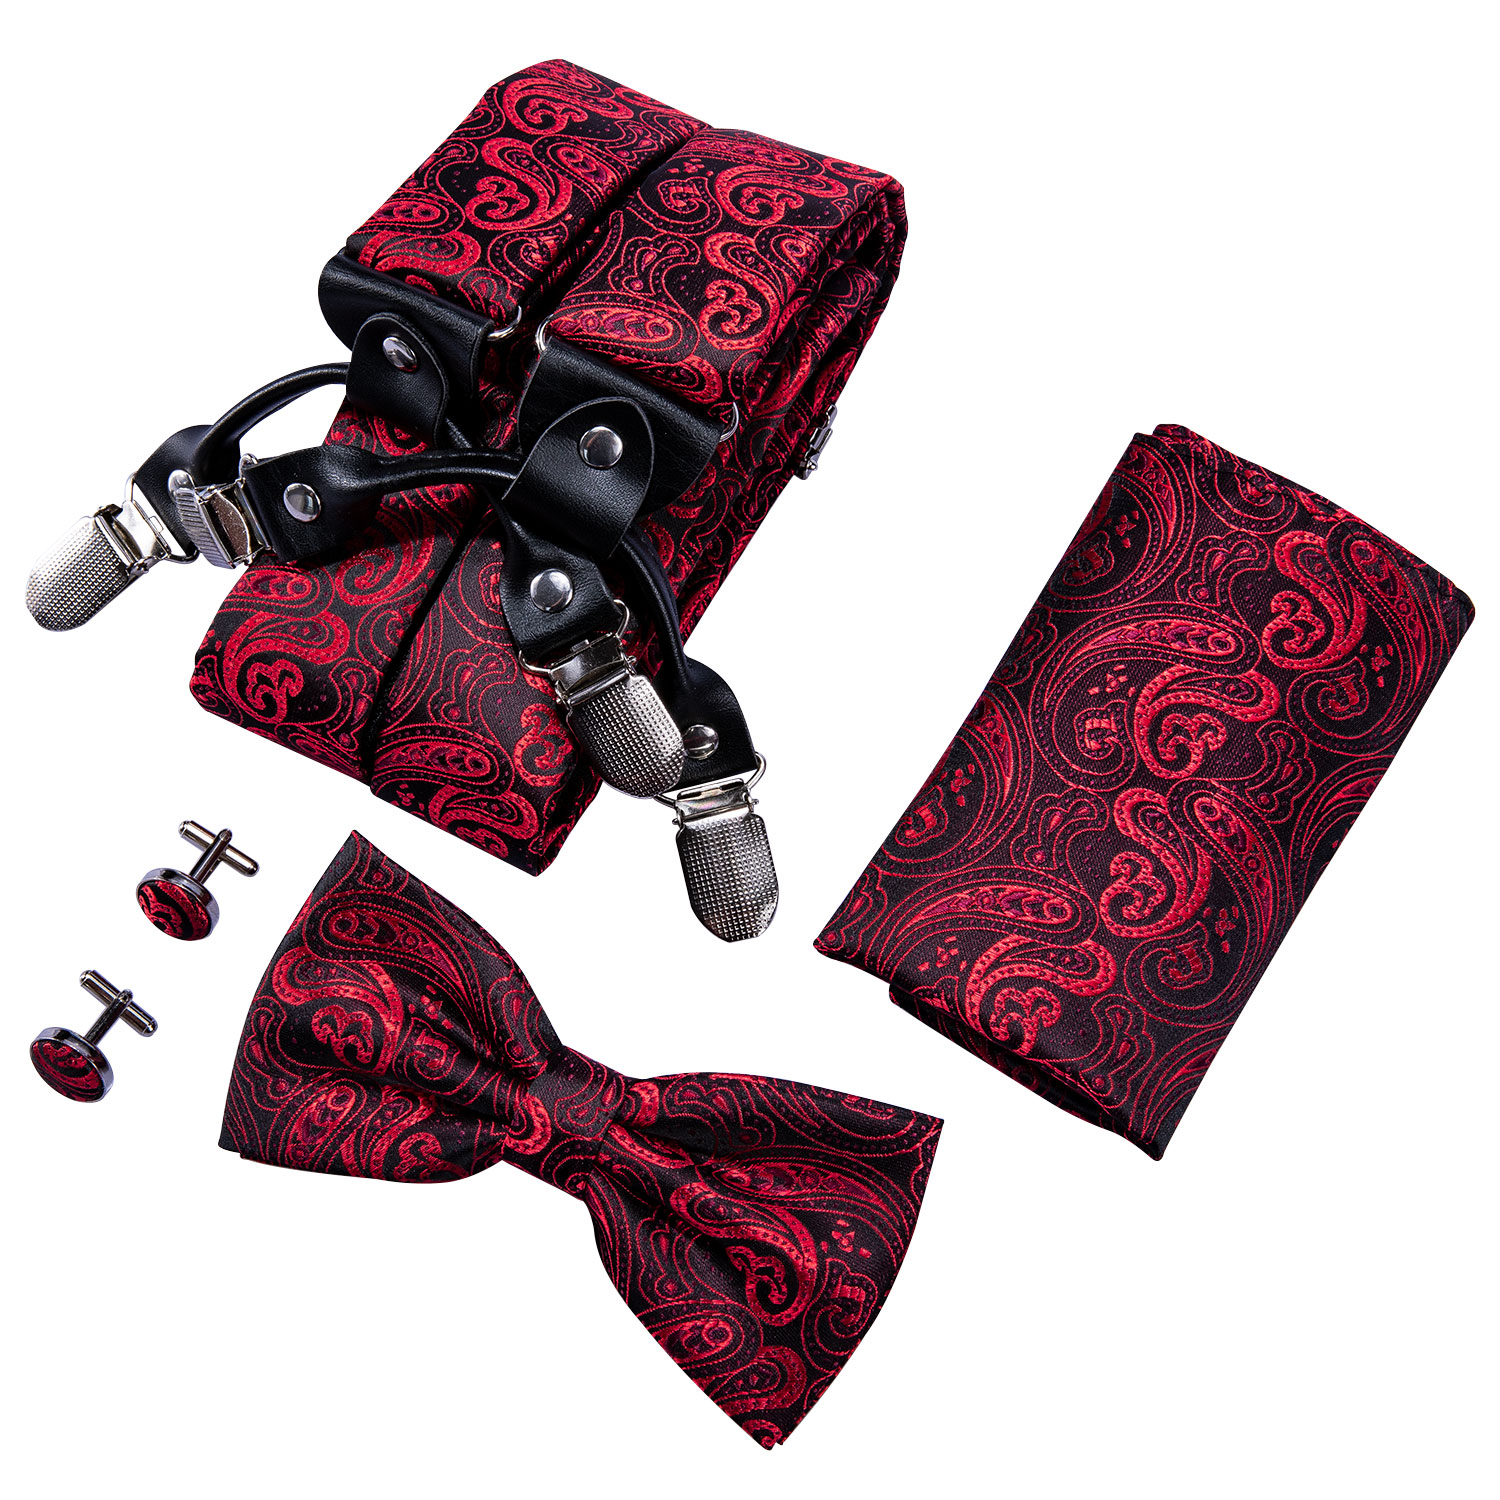 Men's Fashion Suspenders Shirt Bow Tie Red Paisley Hanky Set Woven Y-Back Silk Suspender No-slip Silver Clips Barry.Wang BB-2001